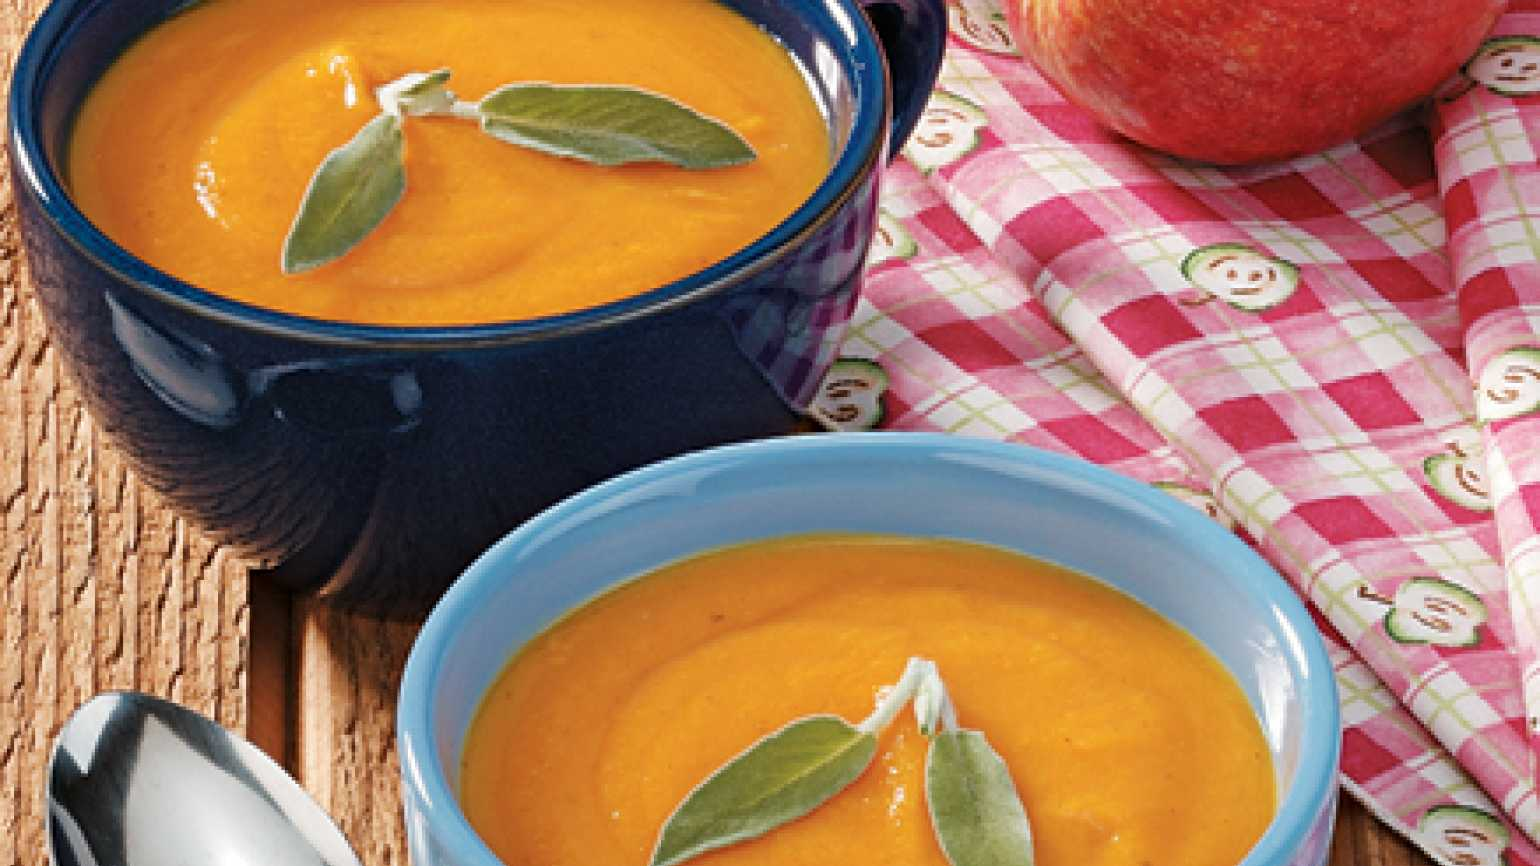 Soup recipes: Apple Squash Soup